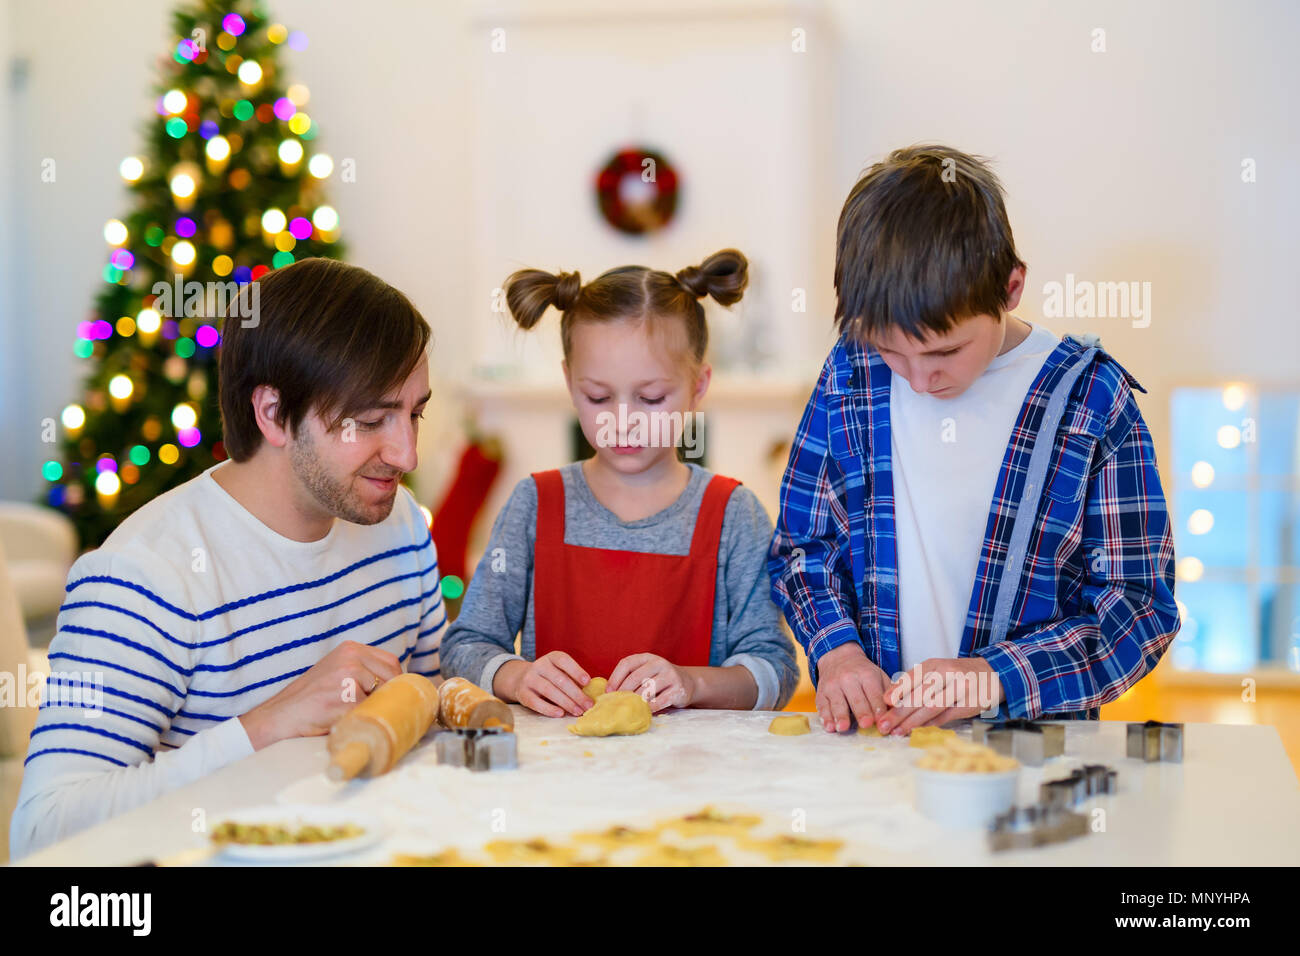 Family of father and kids baking cookies at home on Xmas eve. Beautifully decorated room, Christmas tree and lights on background. - Stock Image